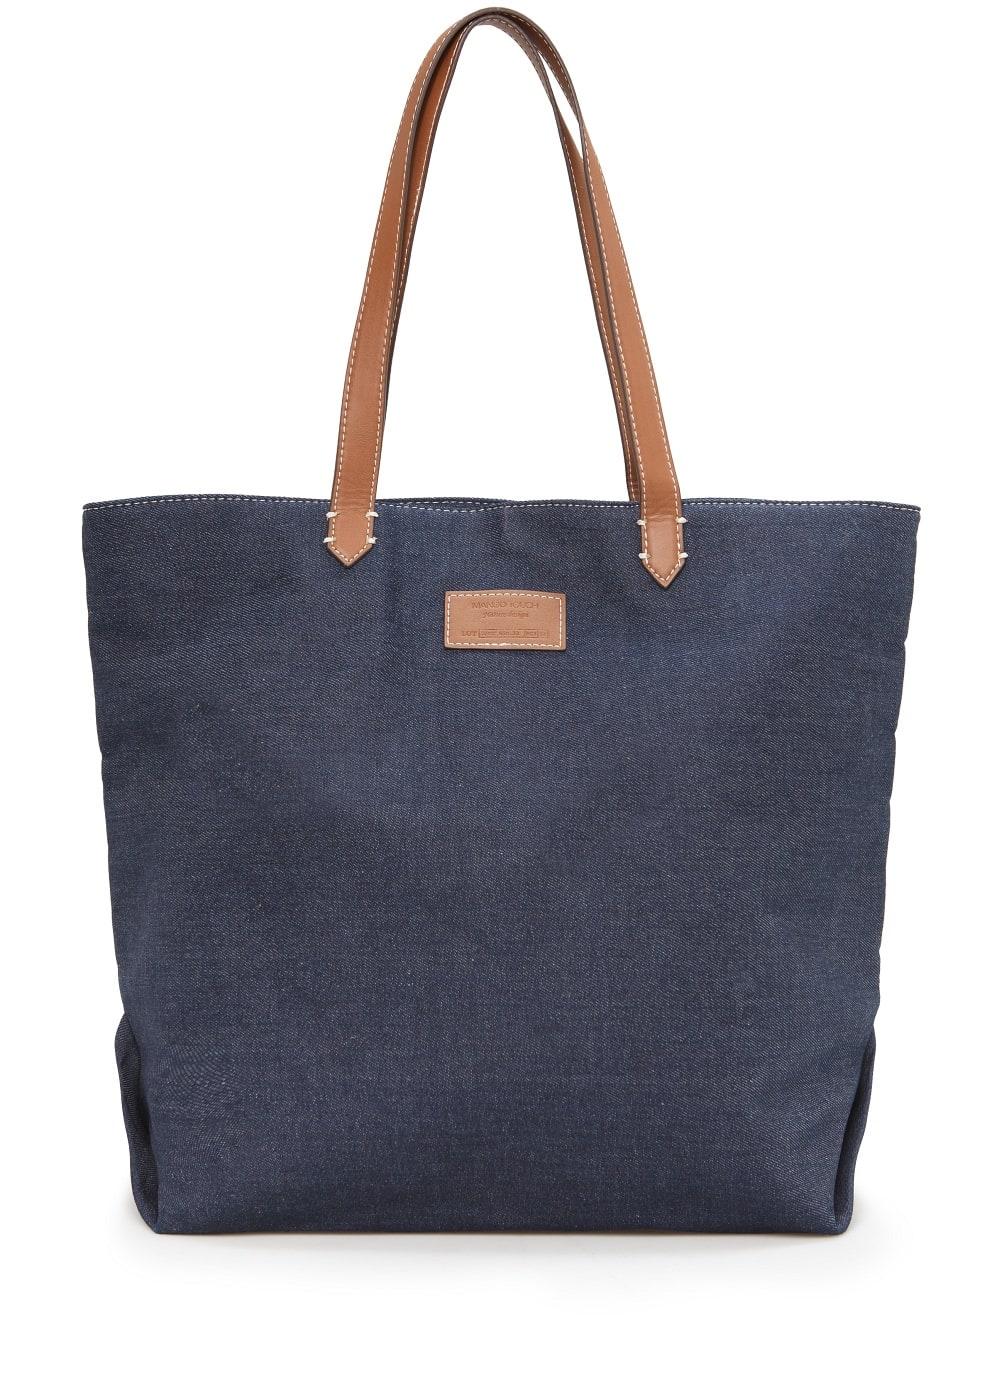 Contrast handle bag